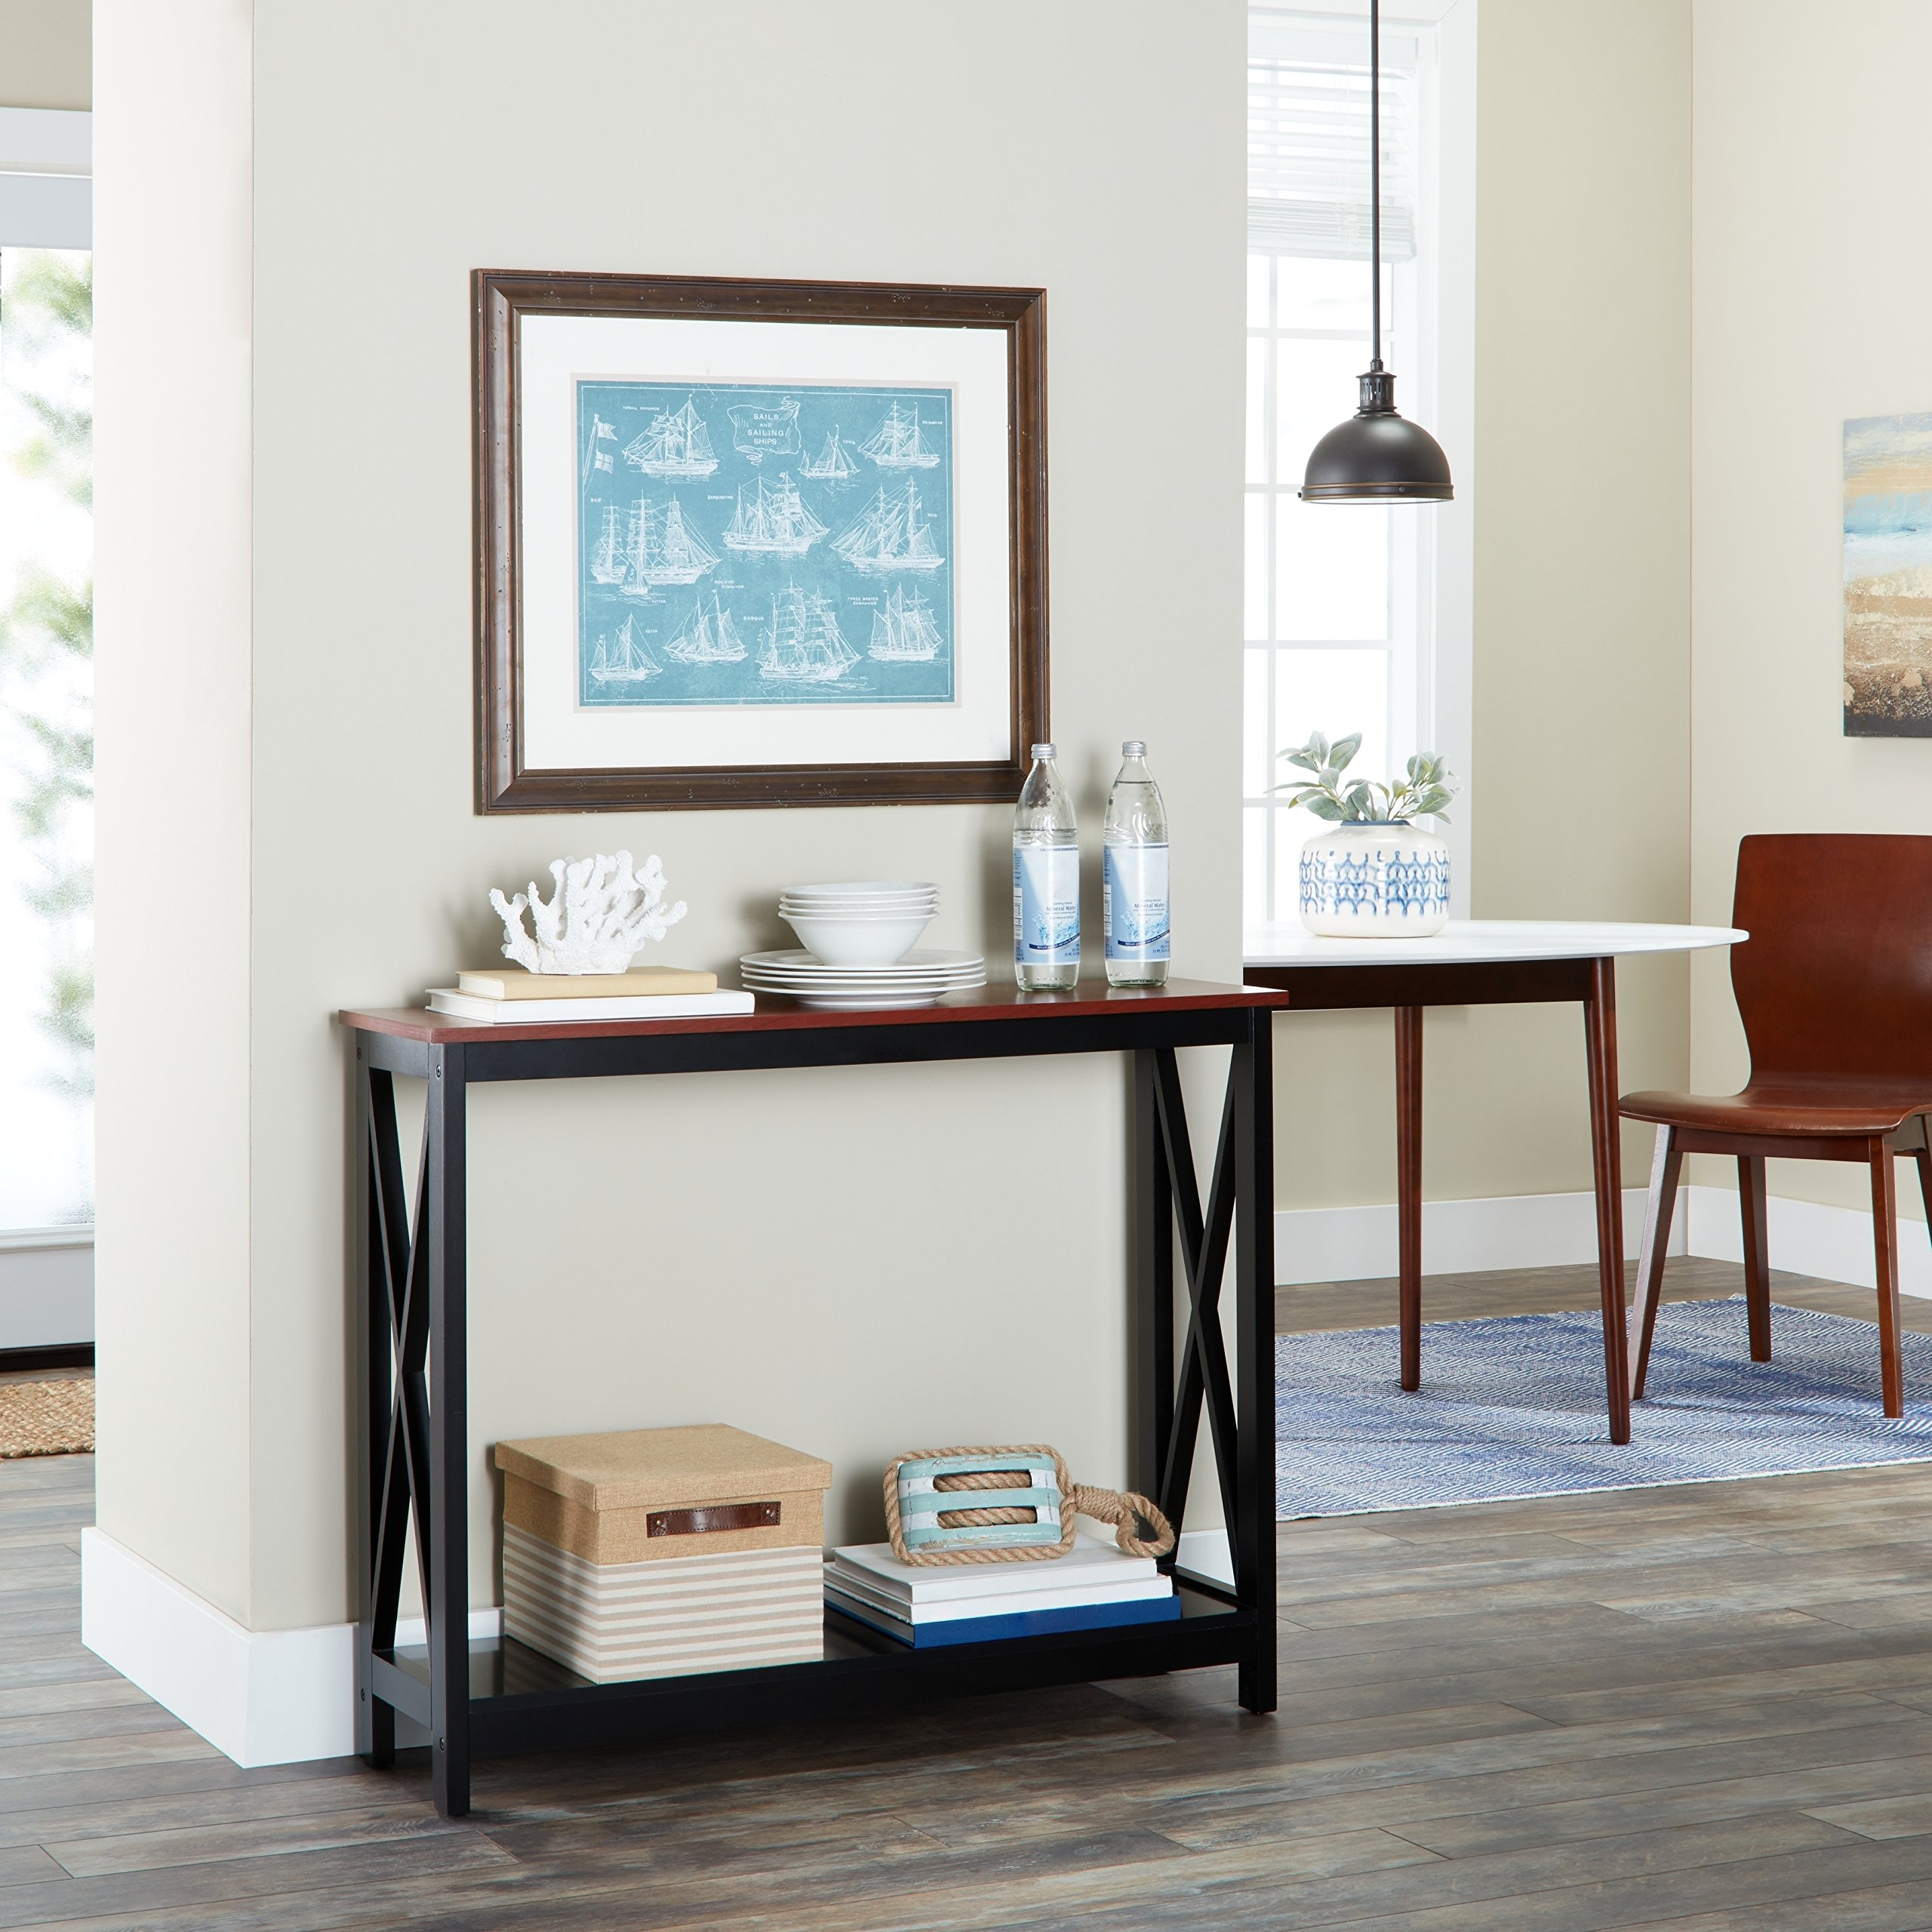 Modern Bywater Dauphine Console Table MDF Veneer Wood Rectangle 1 Piece (Cherry/Black)